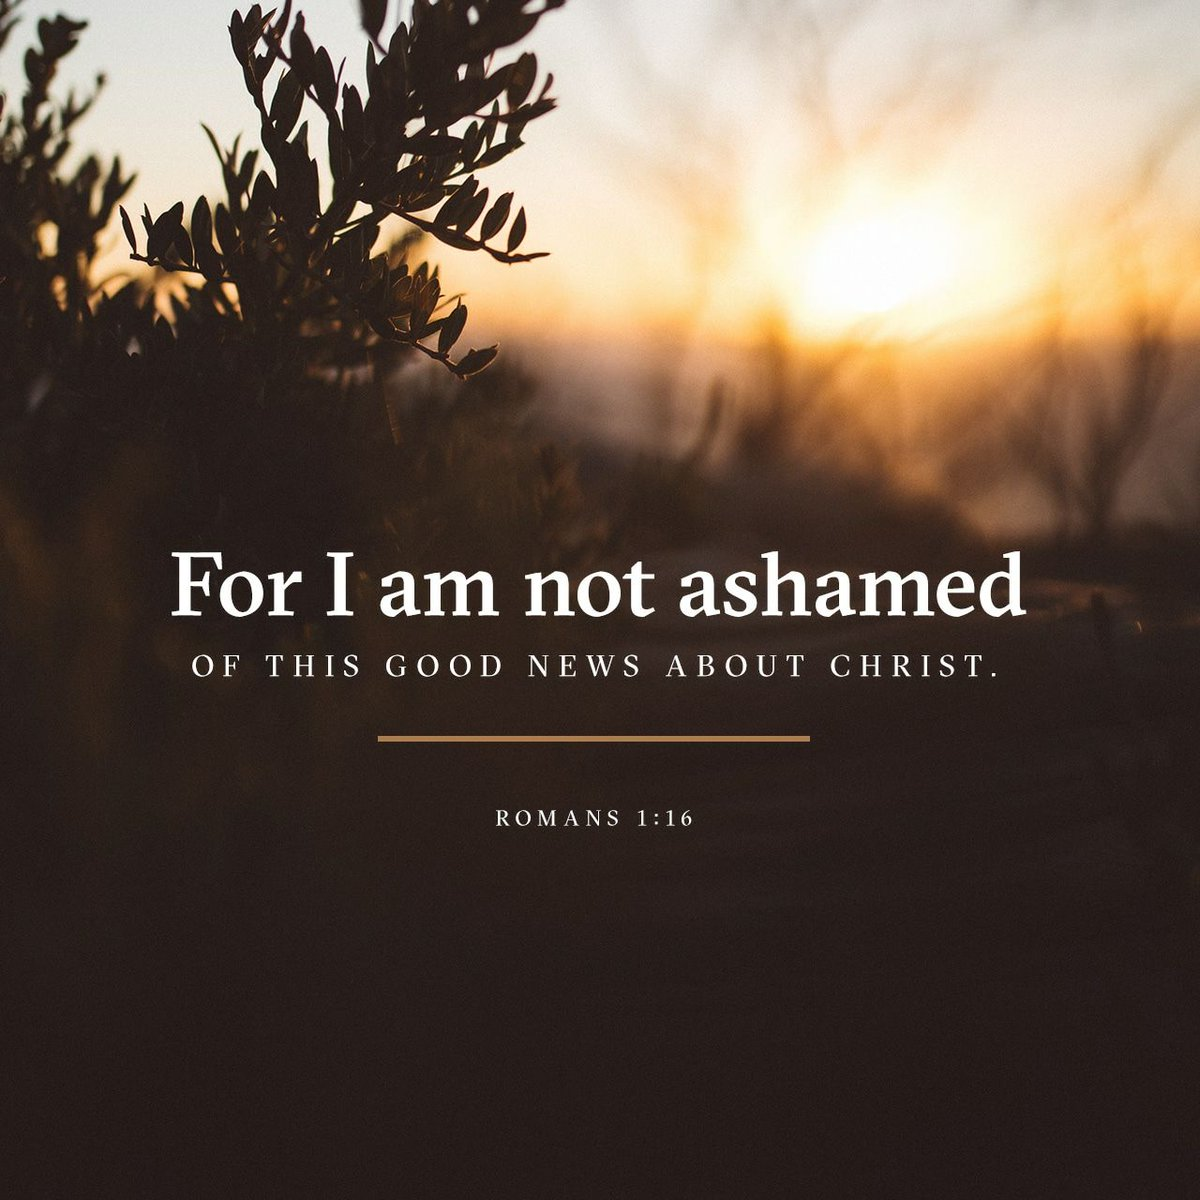 For I am not ashamed of the gospel, for it is the power of God for salvation to everyone who believes...#BSF17 <br>http://pic.twitter.com/7IcNyGaJL8